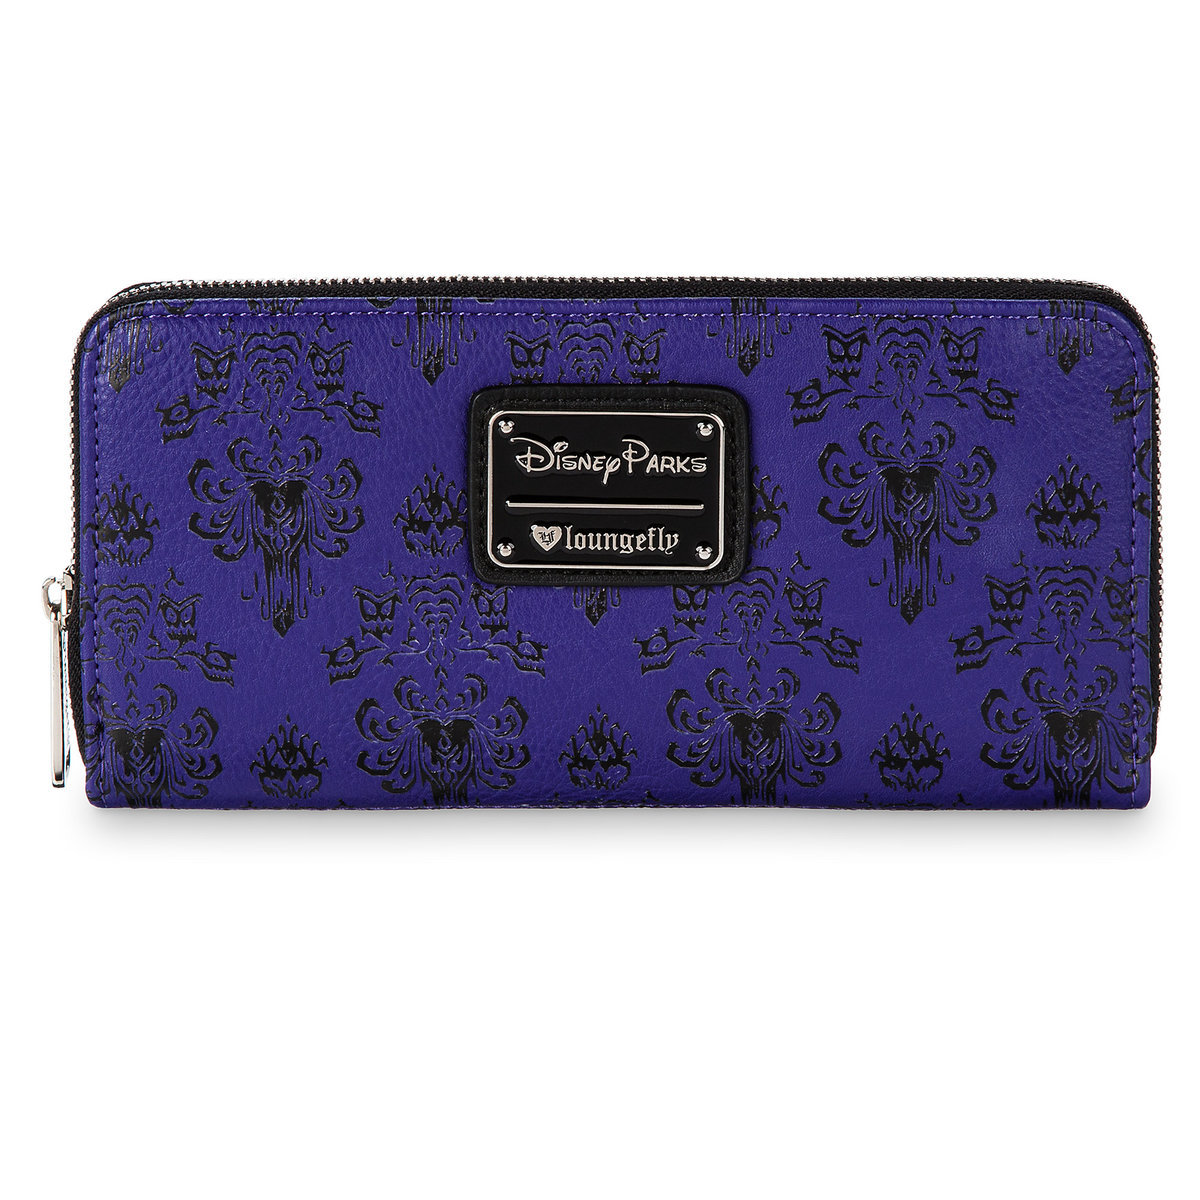 6b1a818ac55 Product Image of Haunted Mansion Wallpaper Wallet by Loungefly   1